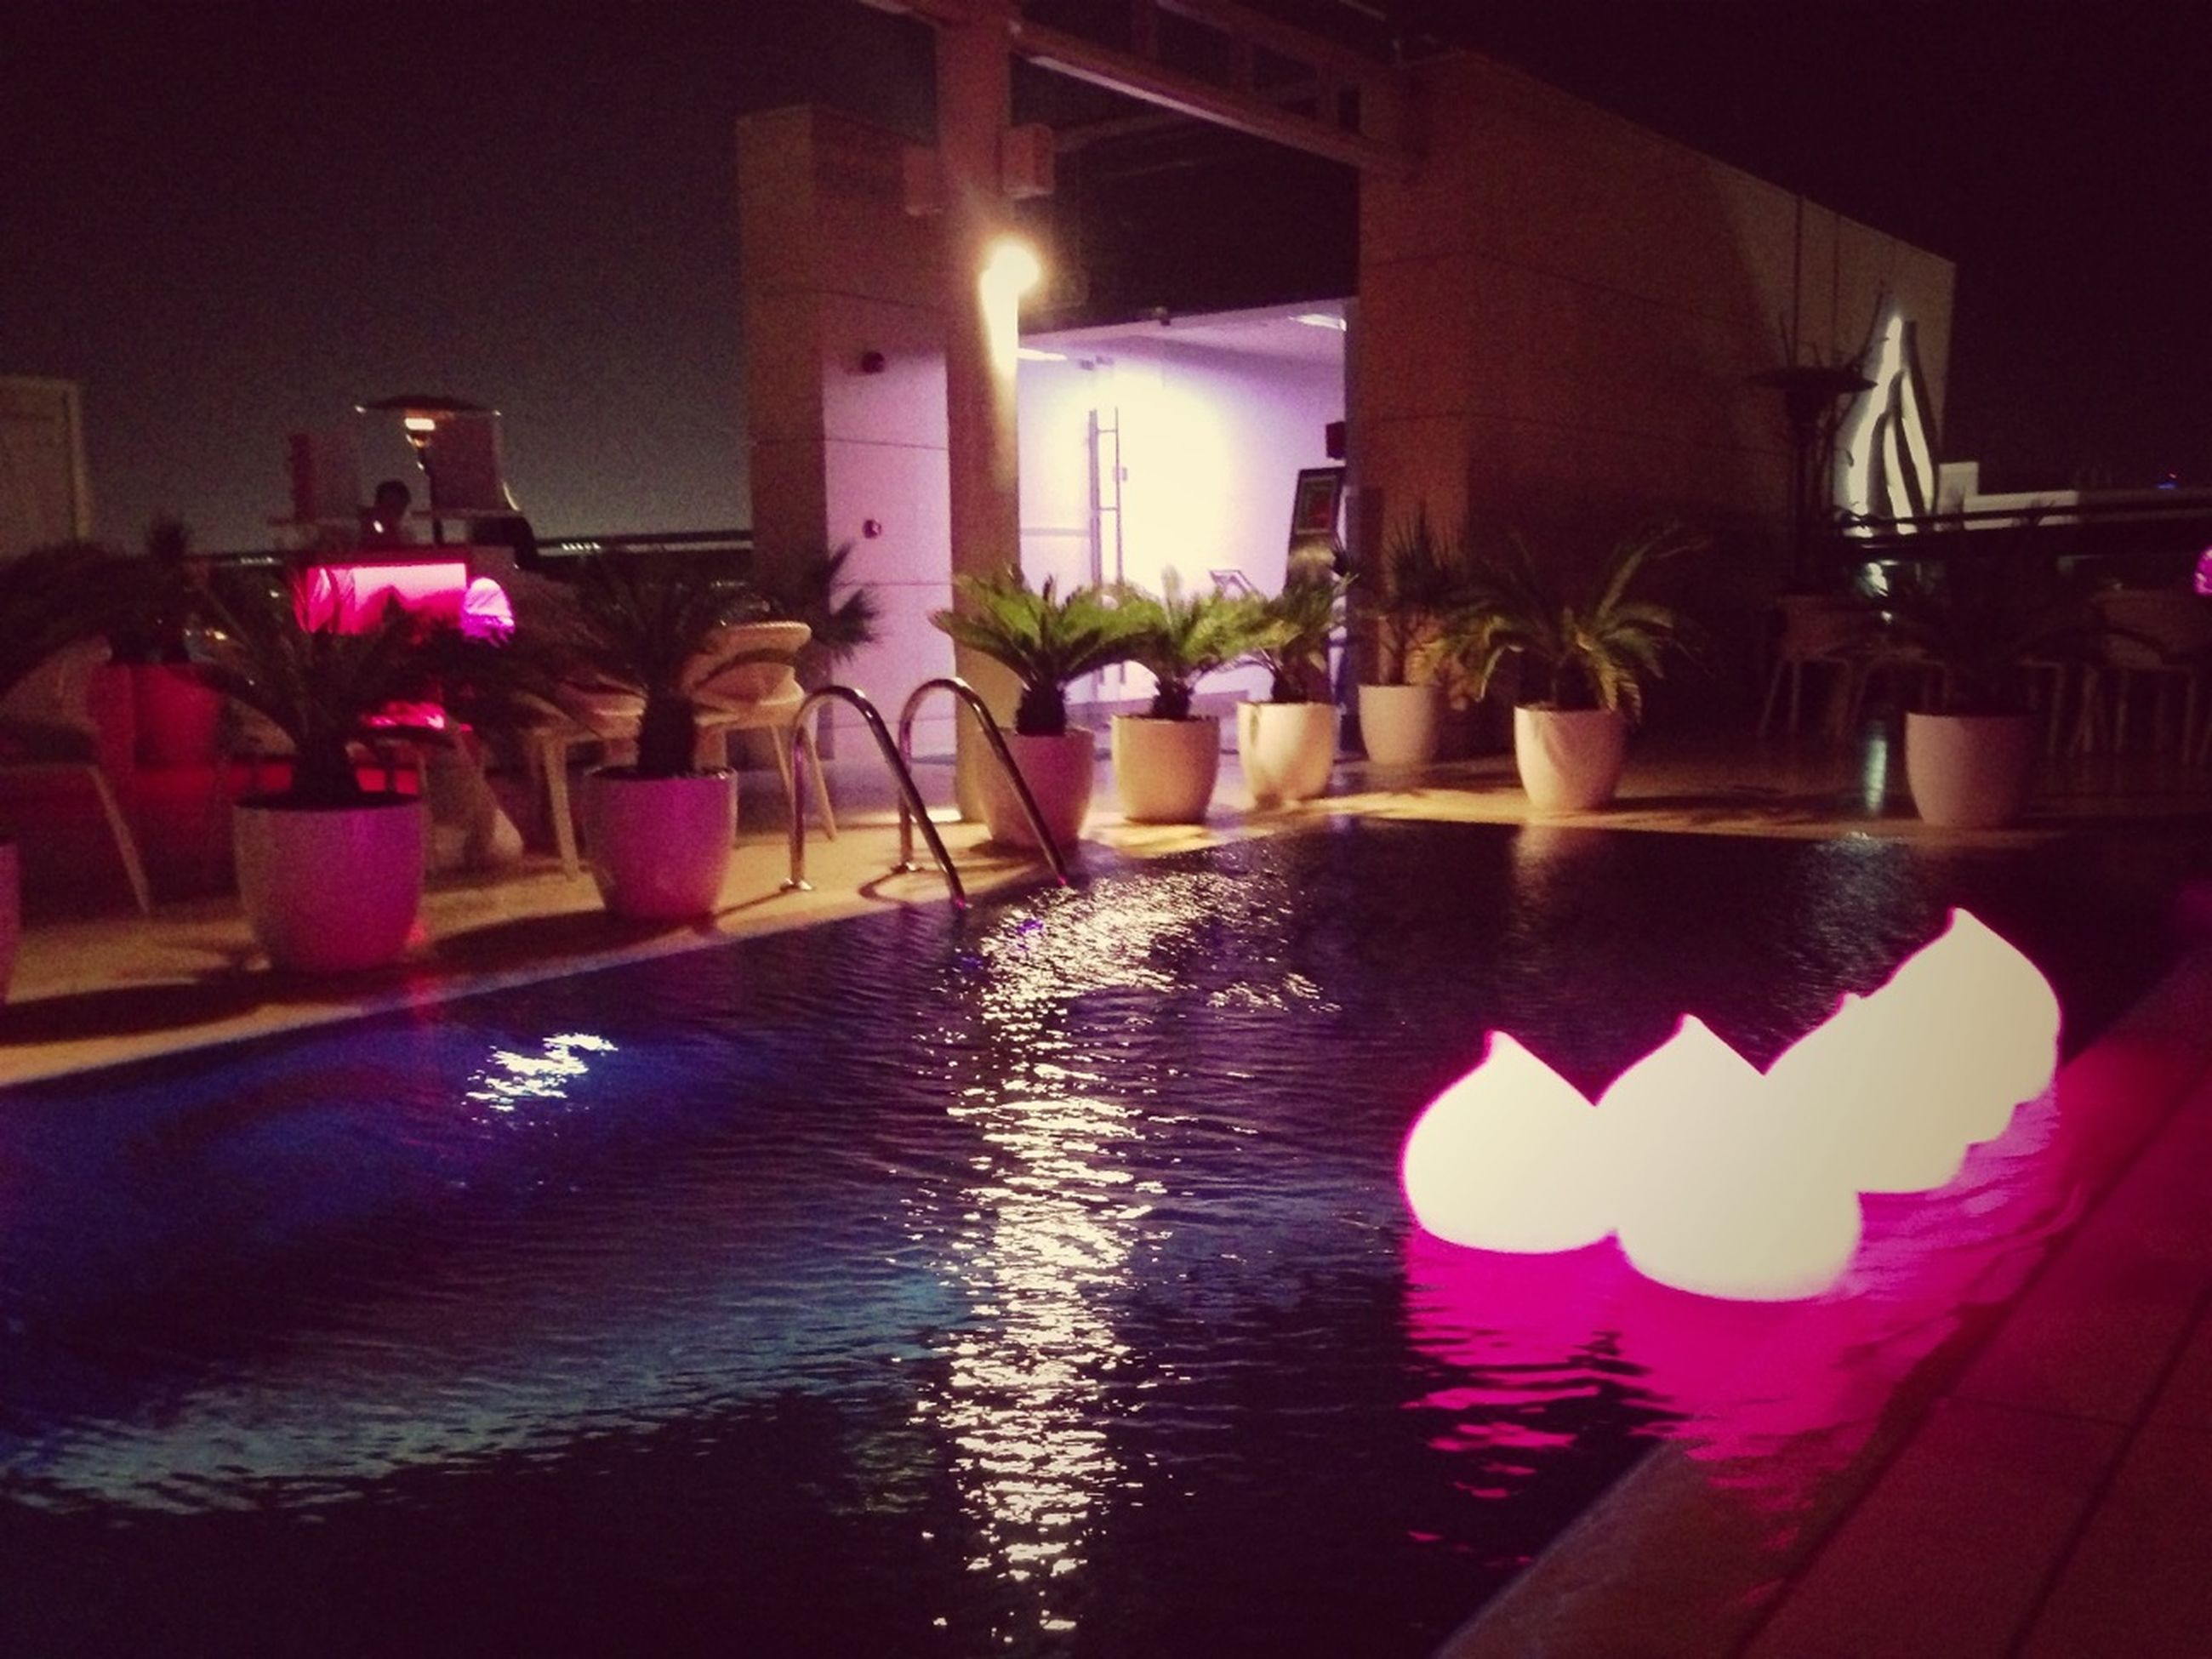 illuminated, night, architecture, built structure, lighting equipment, reflection, building exterior, decoration, multi colored, indoors, light - natural phenomenon, water, no people, glowing, house, table, celebration, potted plant, light, lantern